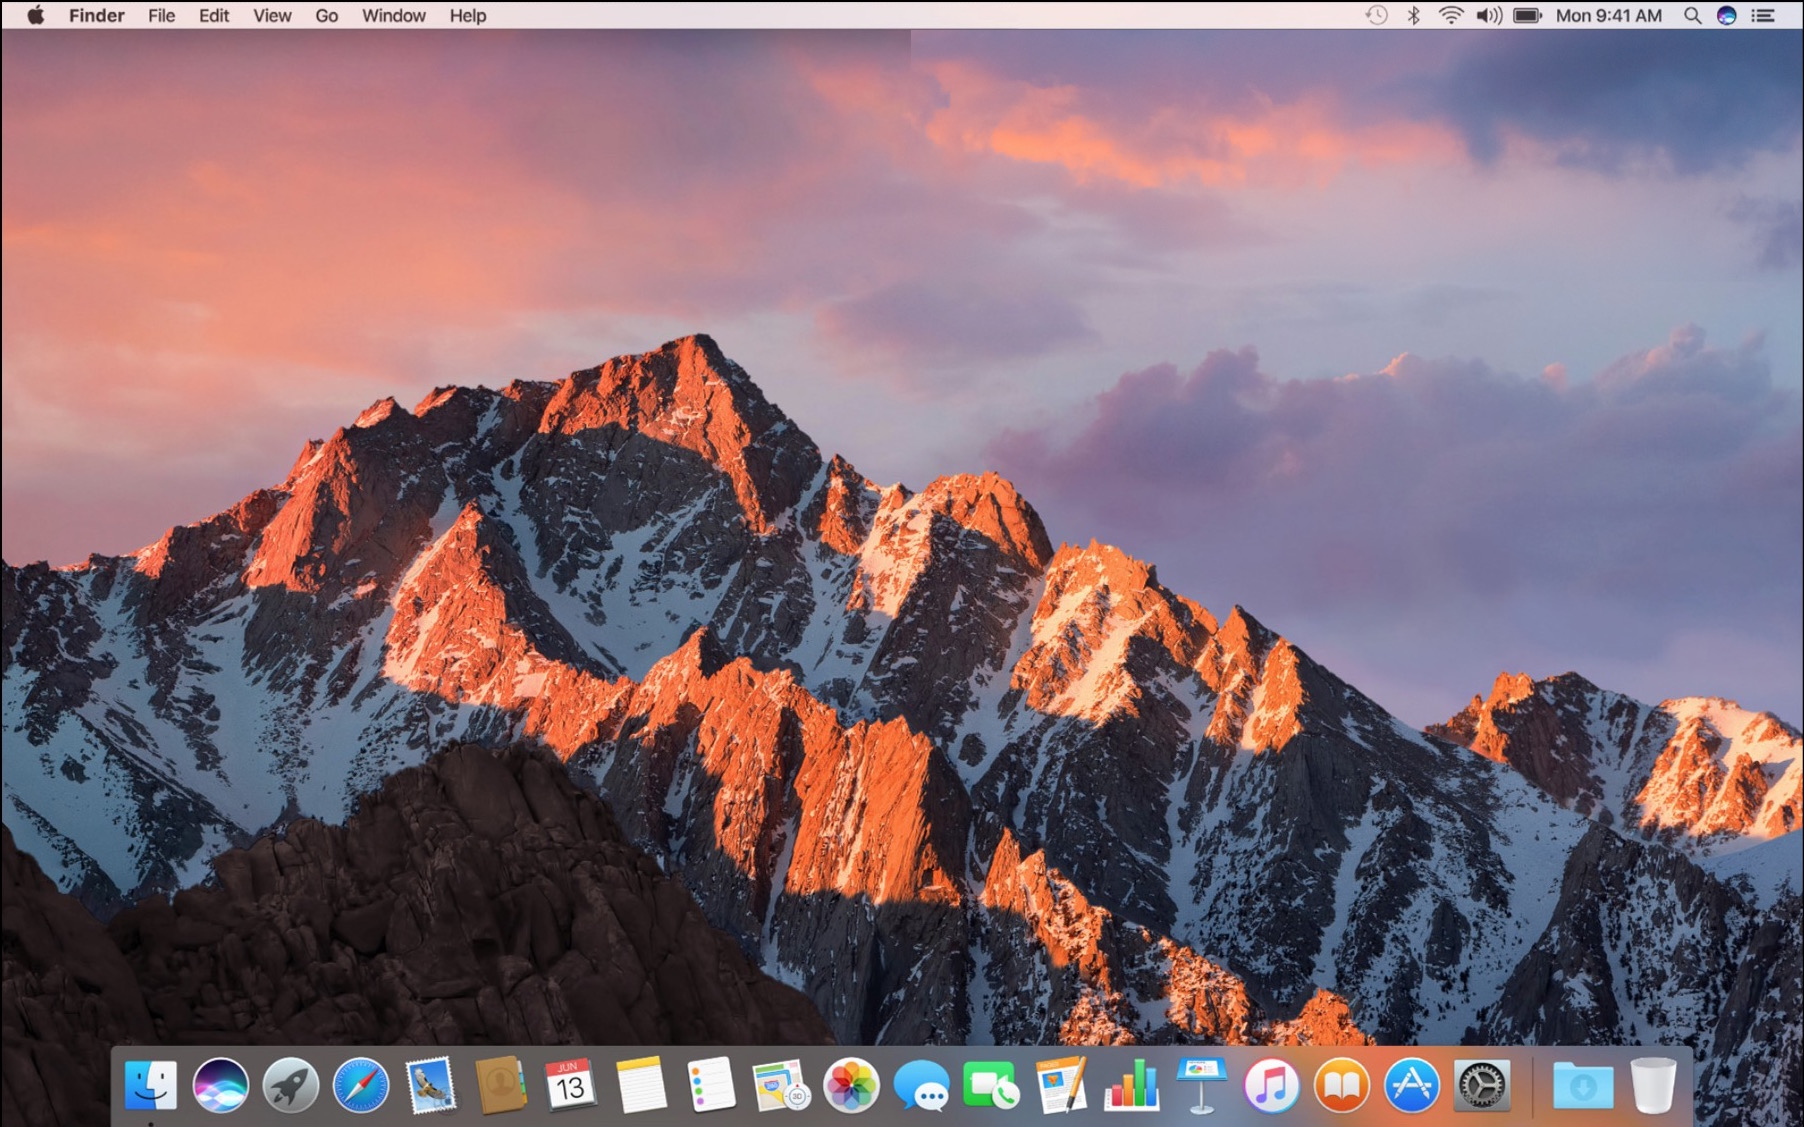 Mac desktop screenshot example